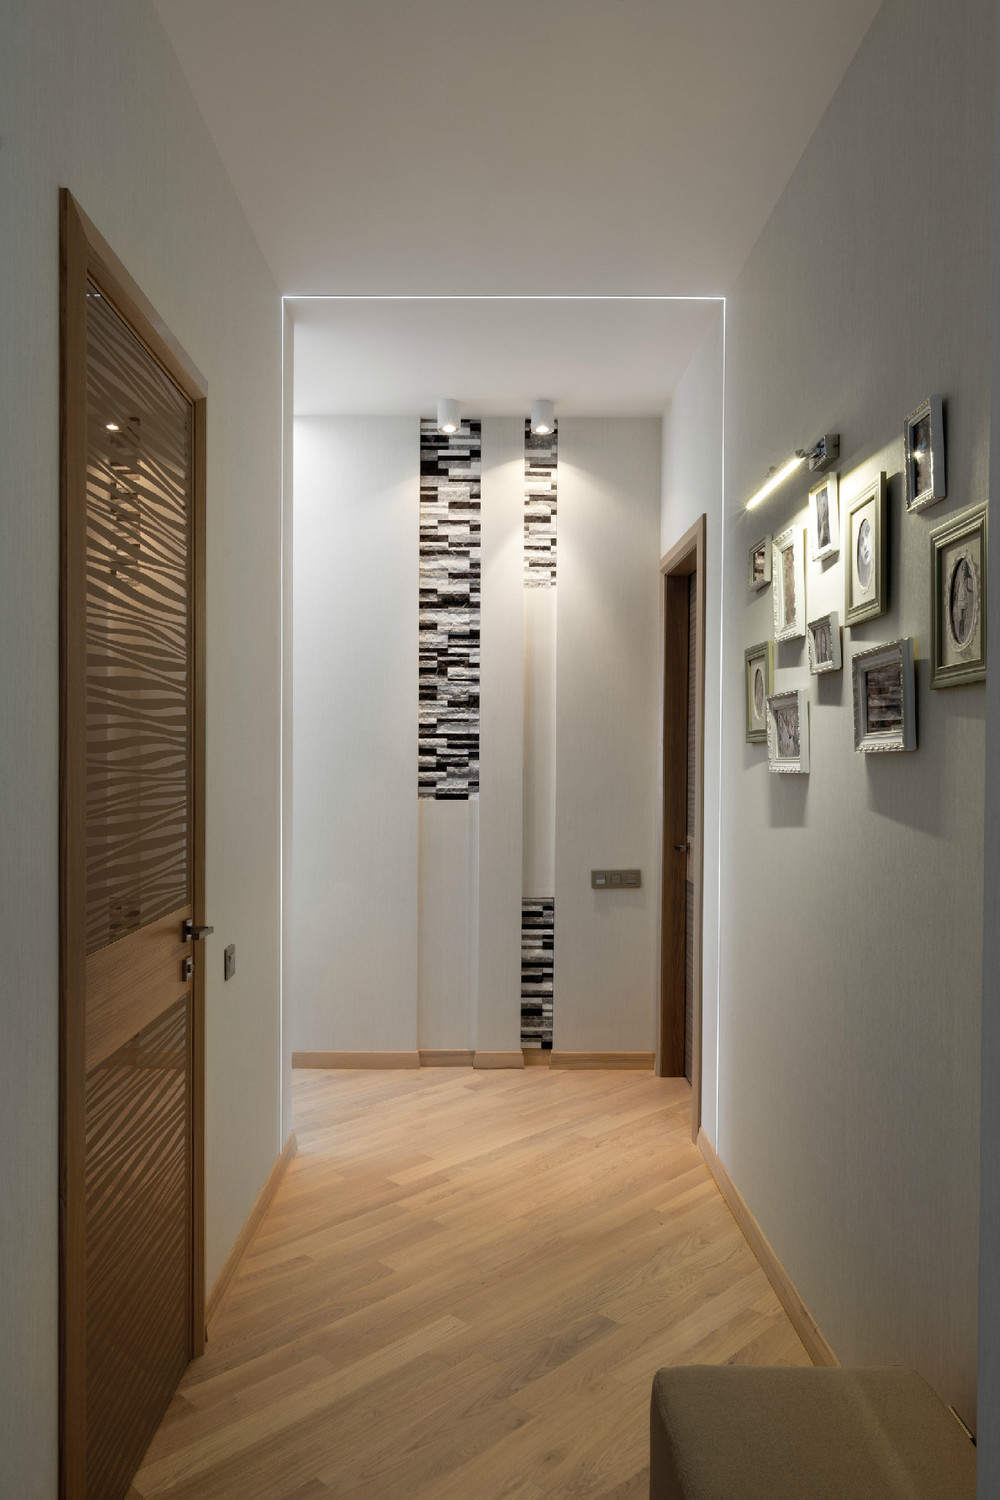 Slim picture light illuminates a family photograph gallery in the